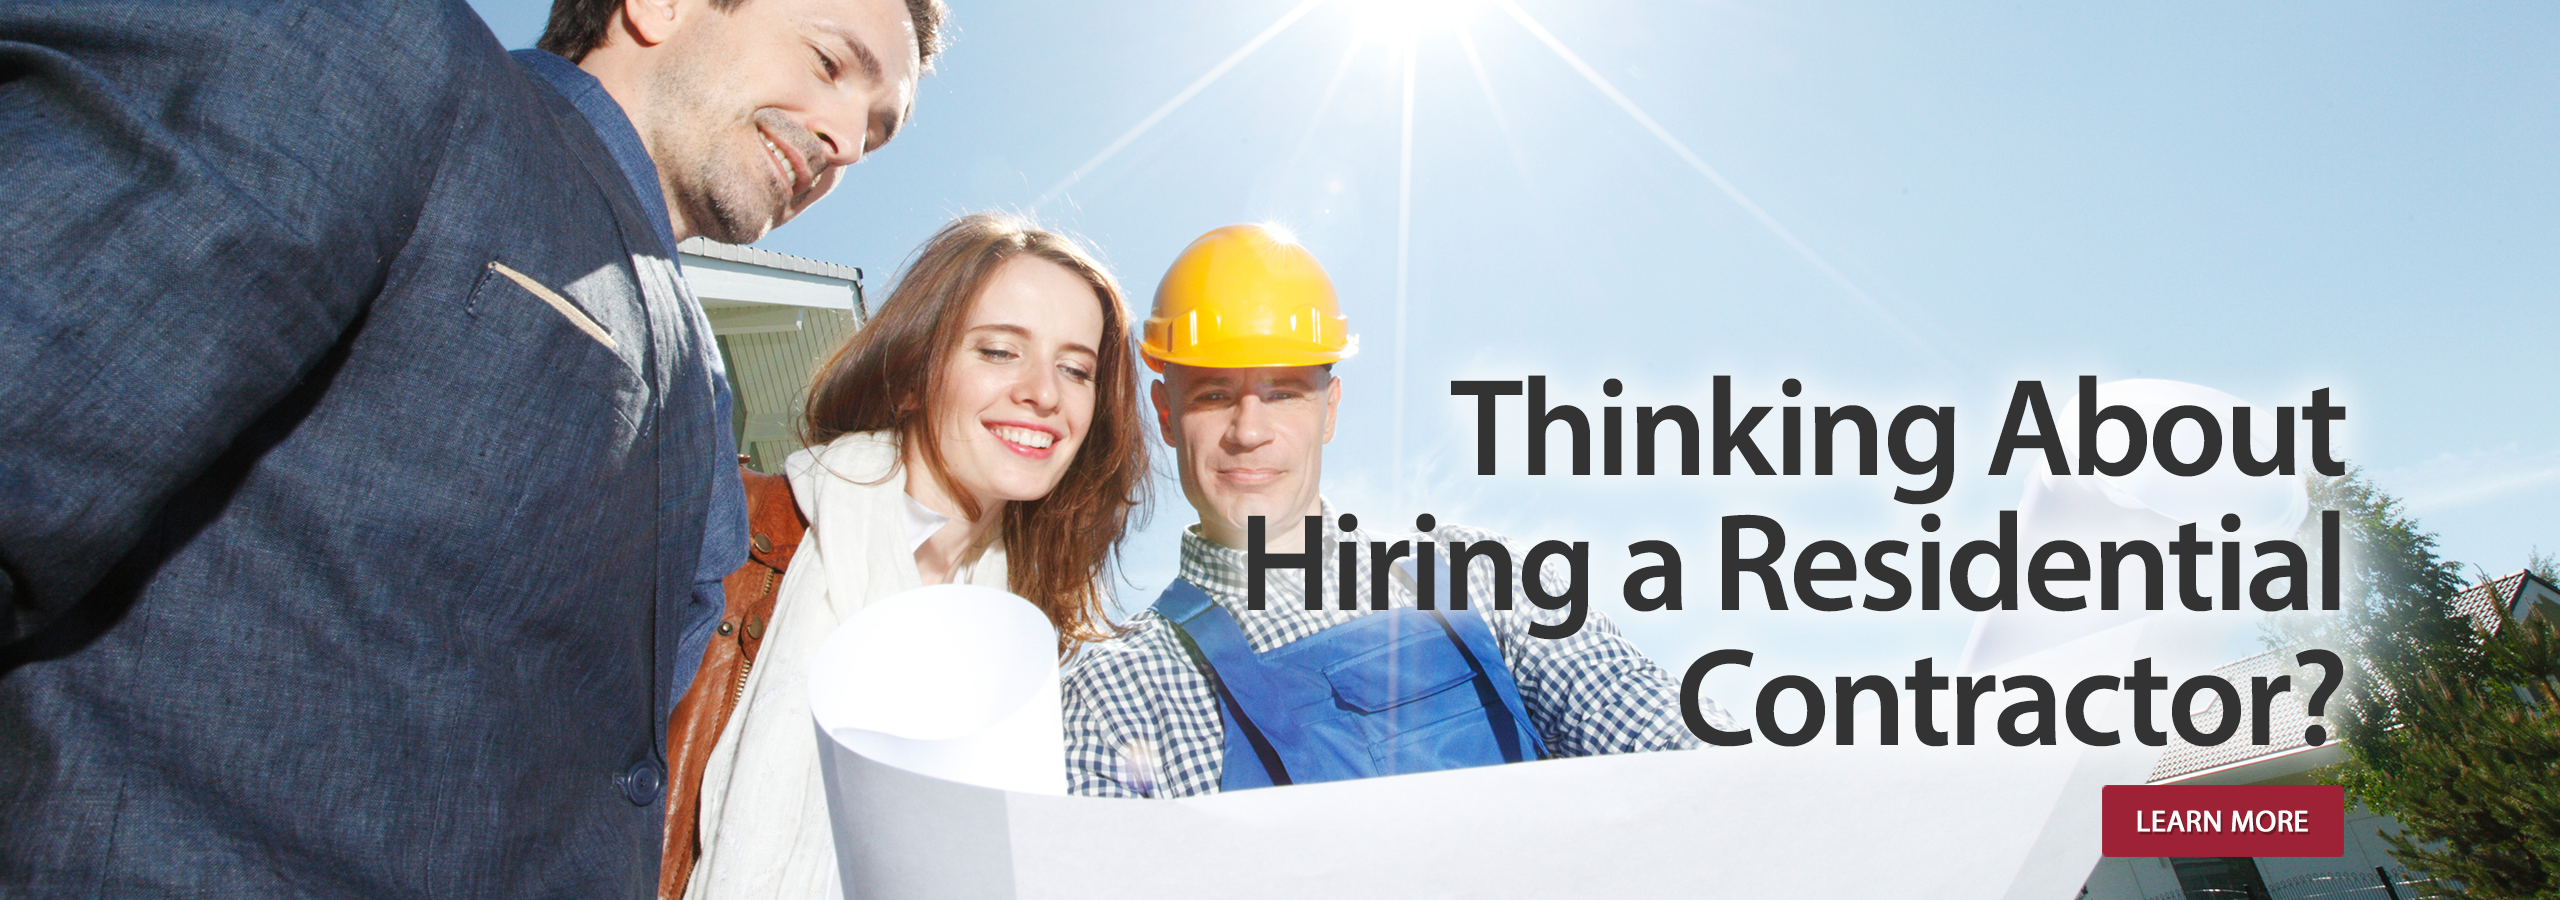 Thinking about hiring a Residential Contractor?